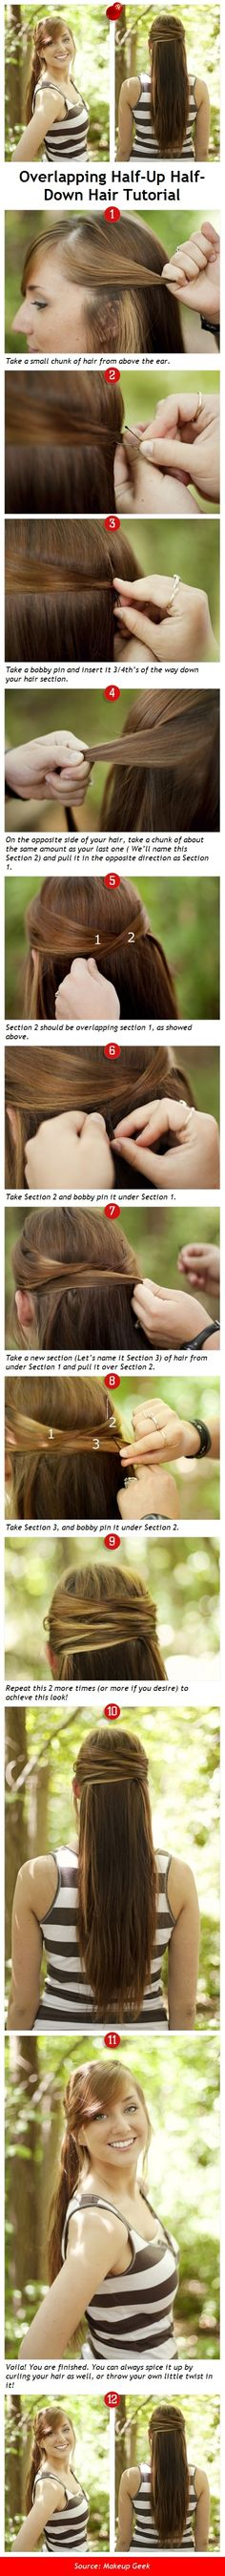 Overlapping Half-Up, Half-Down: DIY Hair Styling